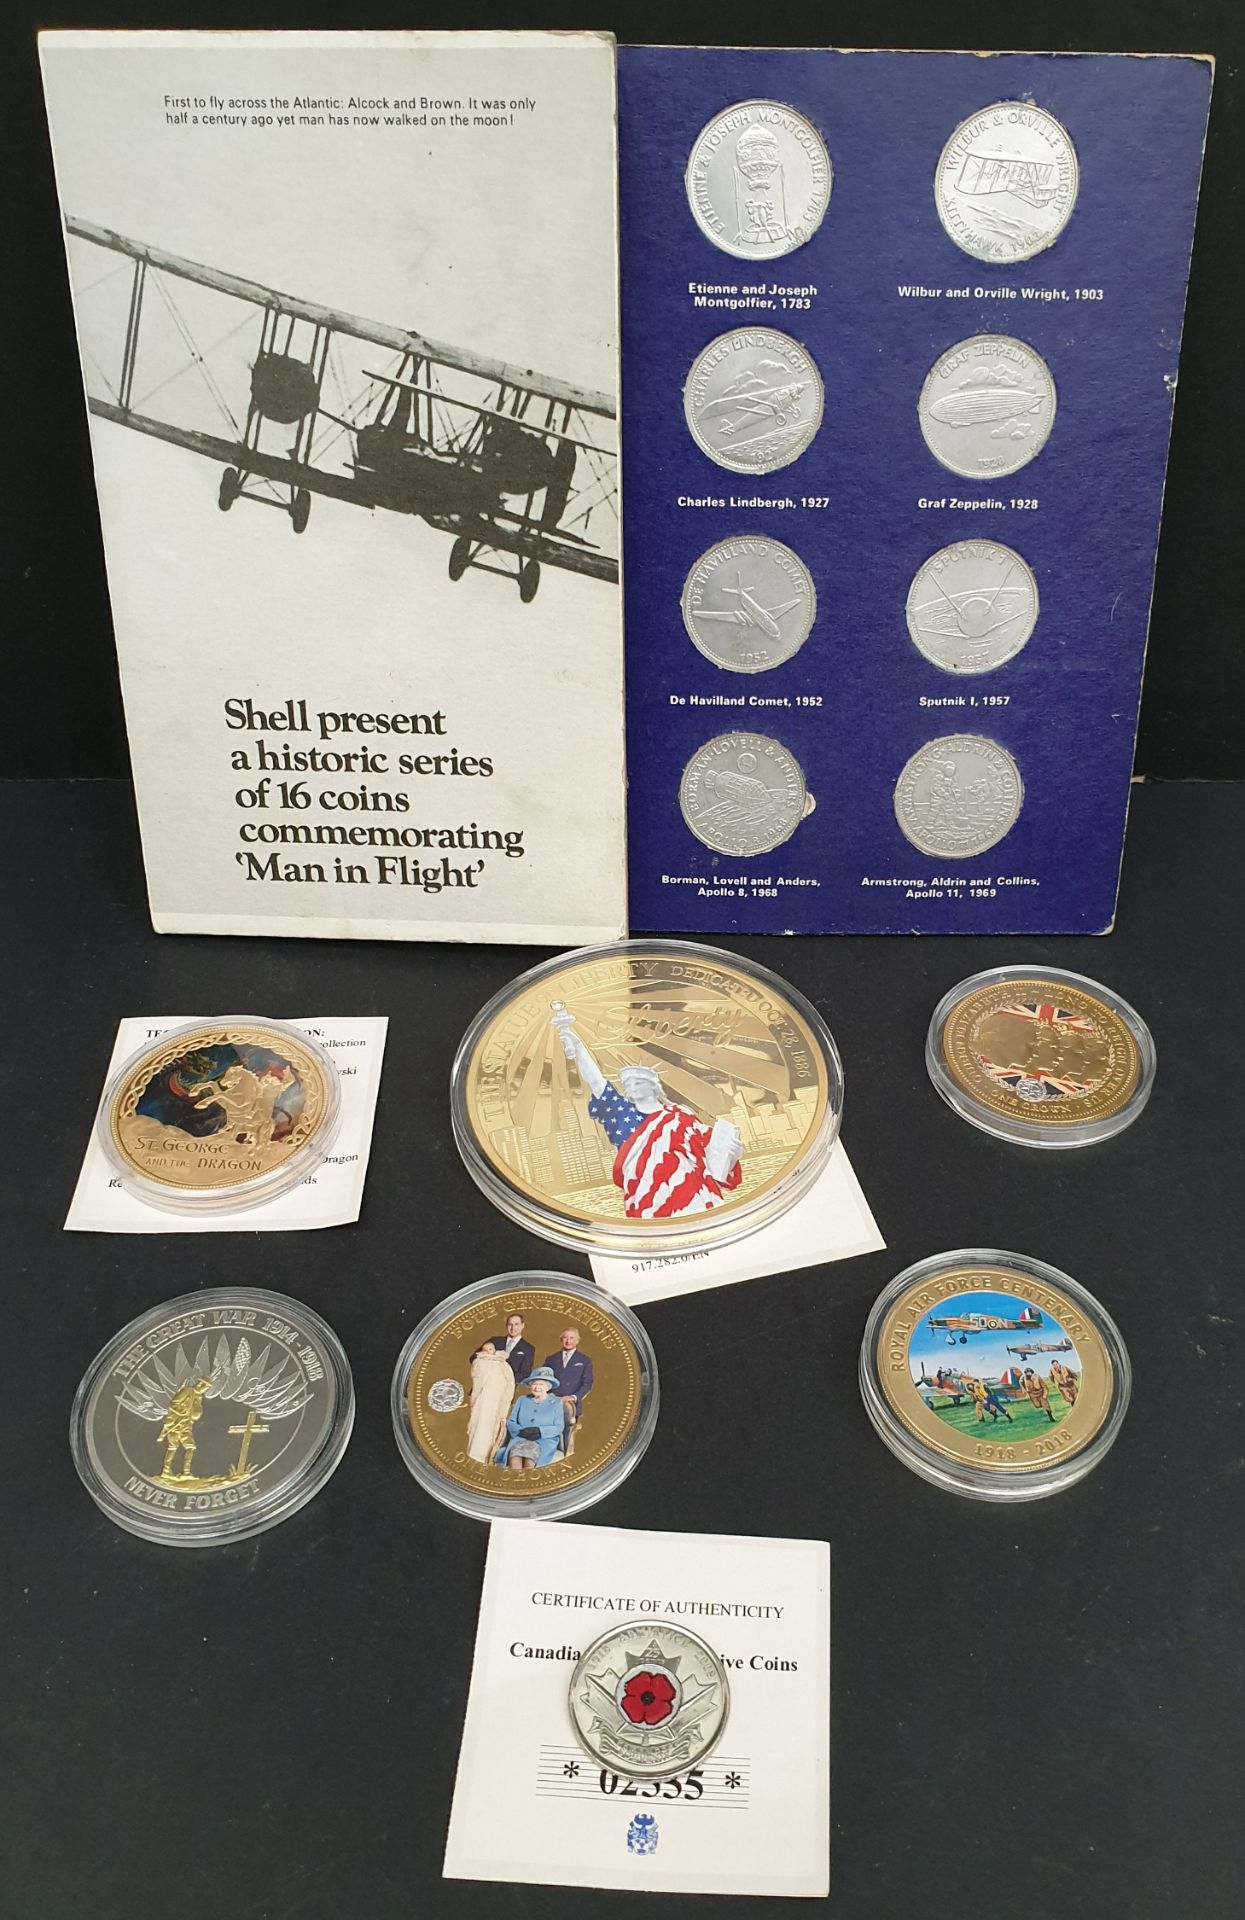 Lot 6 - Collectable Coins Parcel of 7 Plus Shell Flight Coins